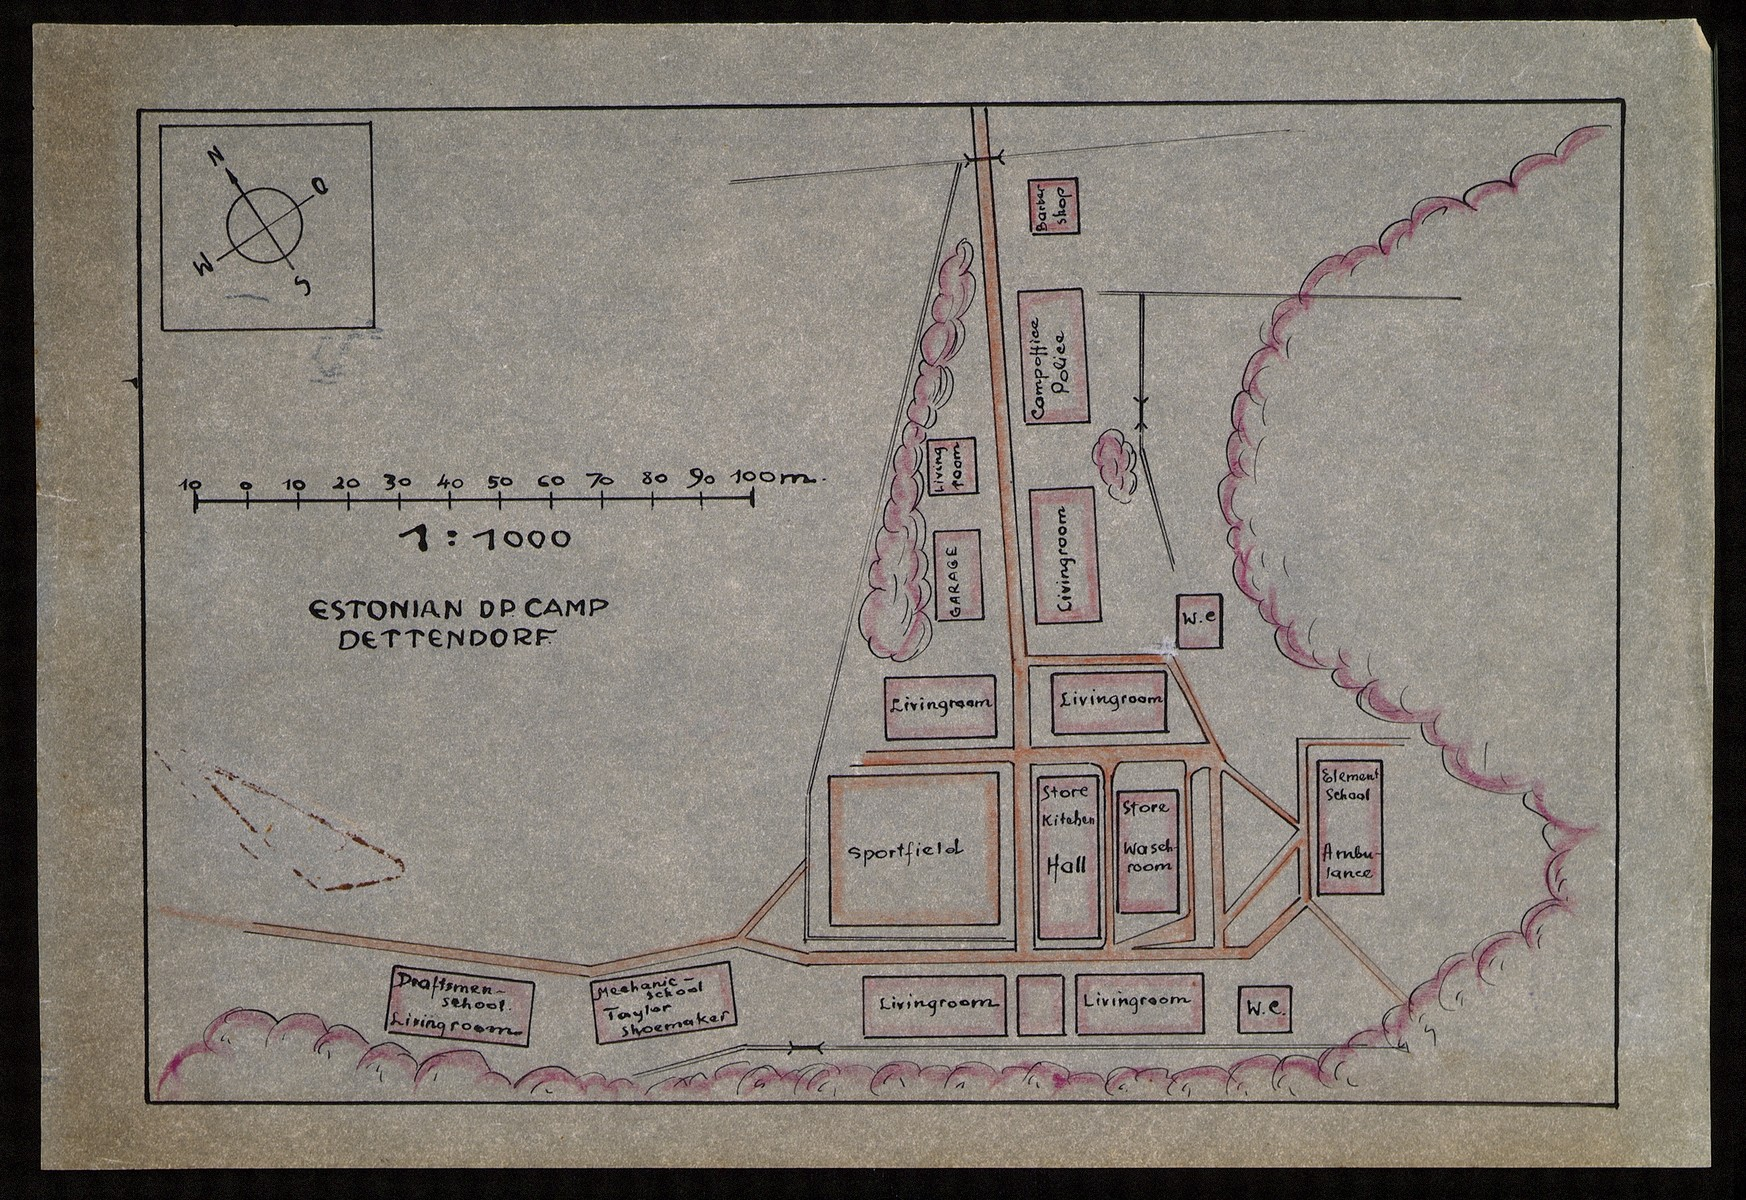 Hand-drawn color map of the DP camp for Estonians in Dettendorf, Germany.